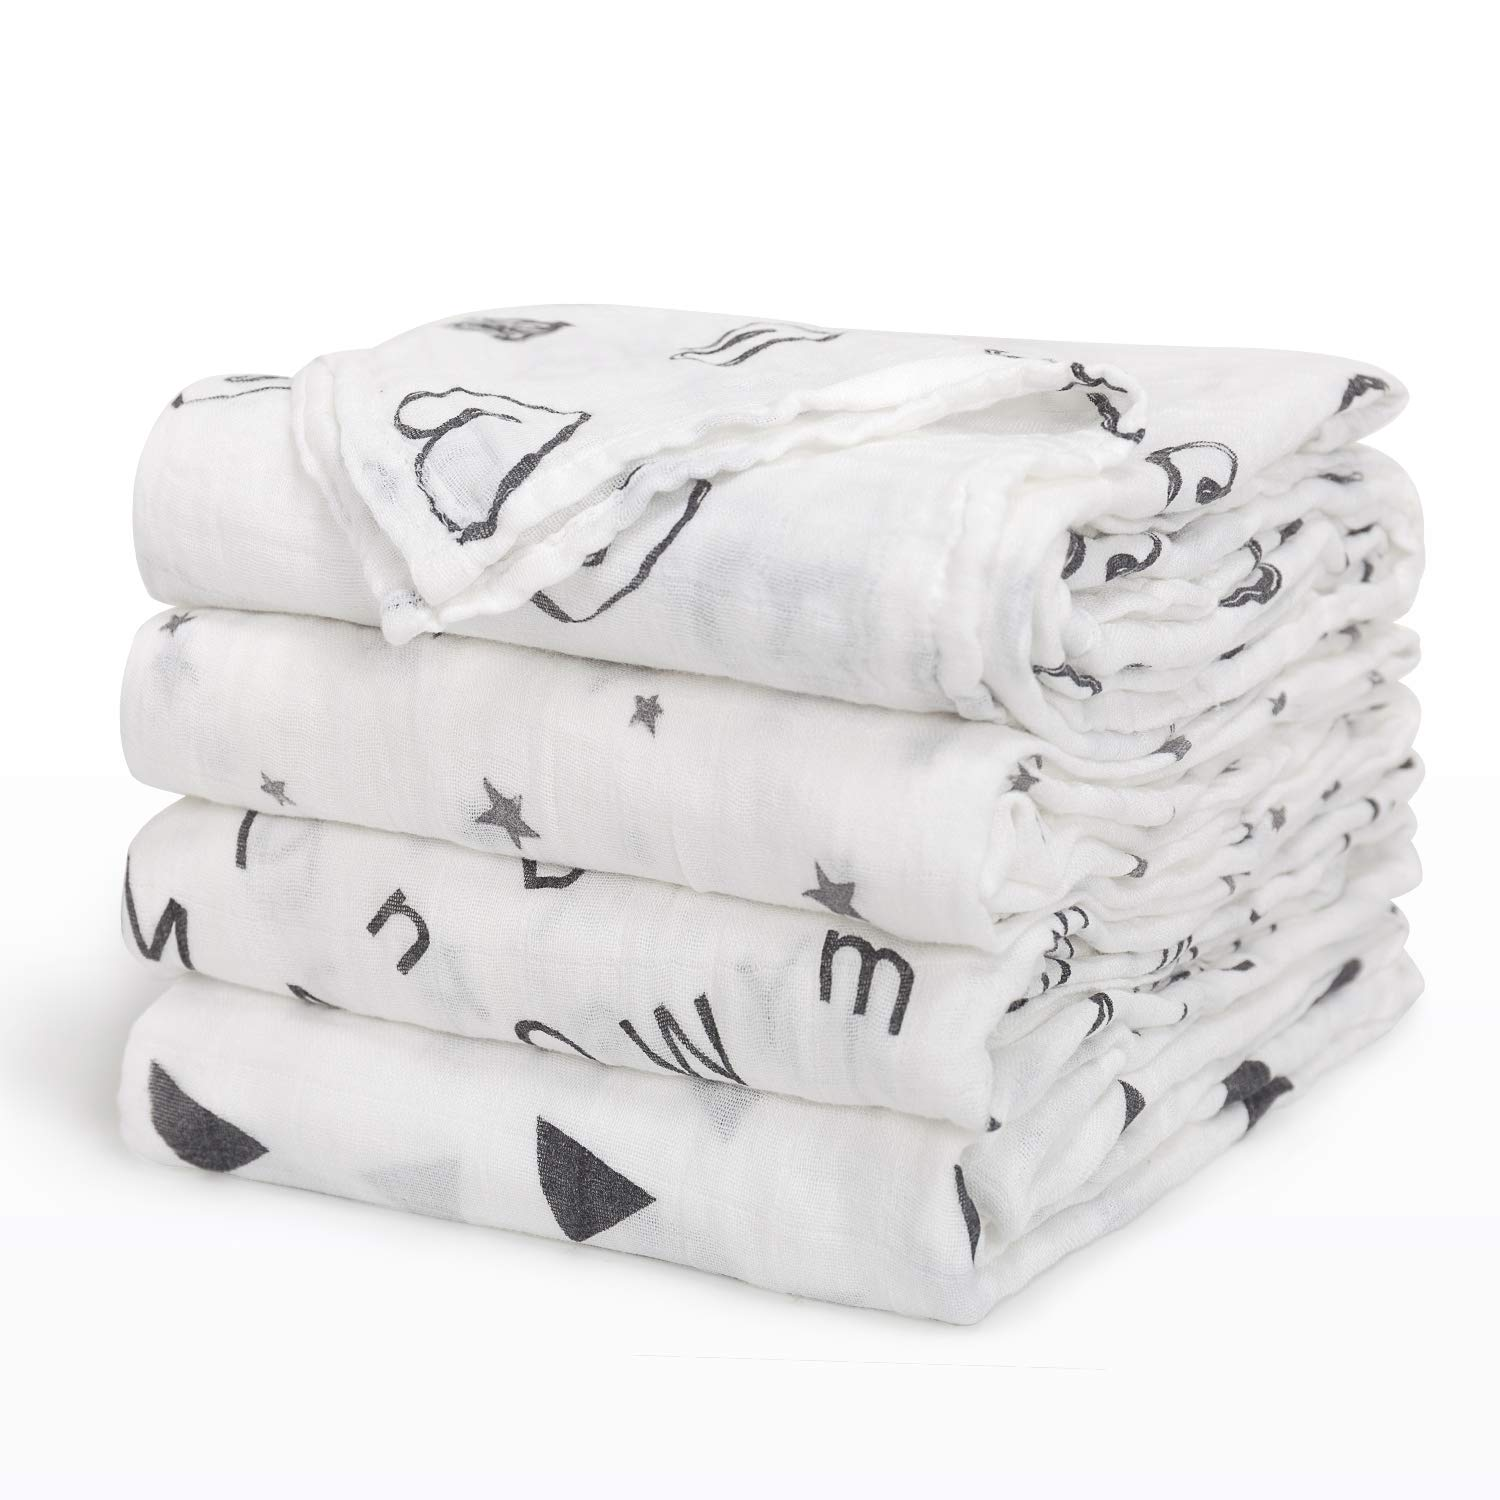 Baby Swaddle Blanket Upsimples Unisex Swaddle Wrap Soft Silky Bamboo - baby blankets